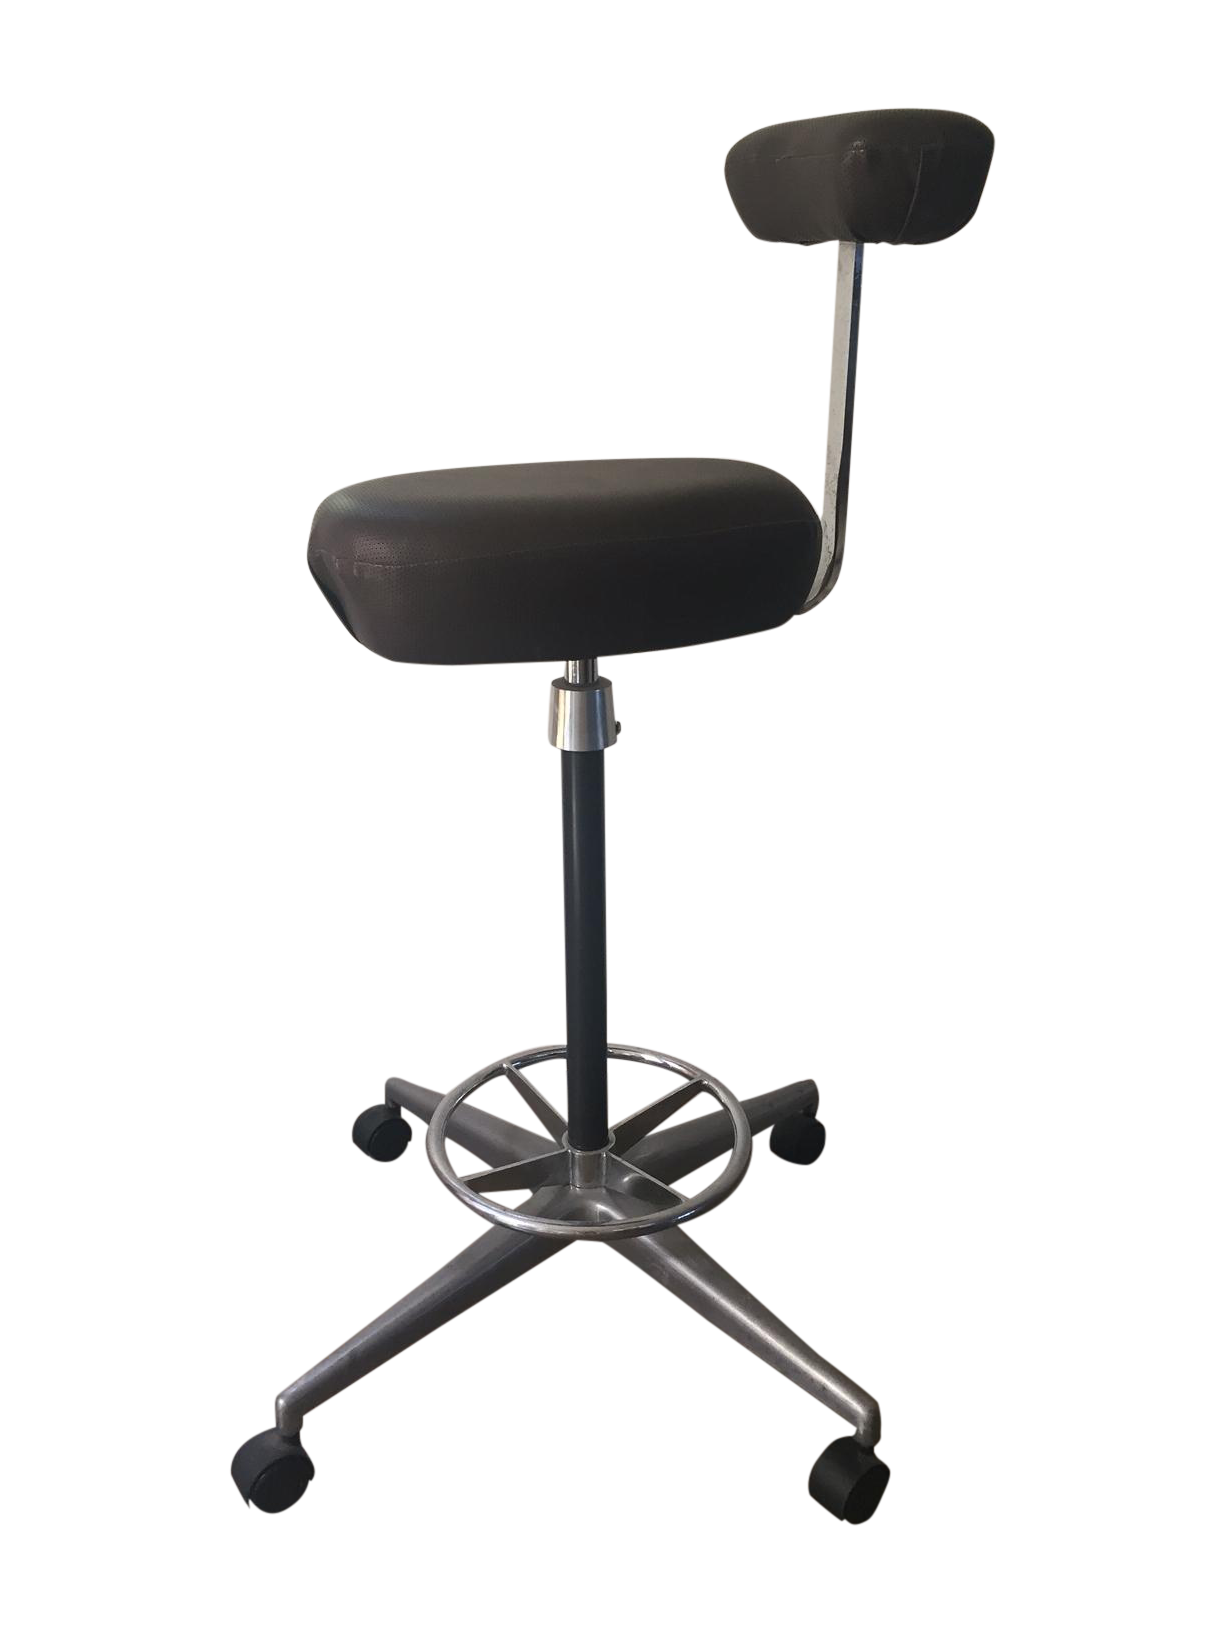 Drafting Stool By George Nelson For Herman Miller Chairish